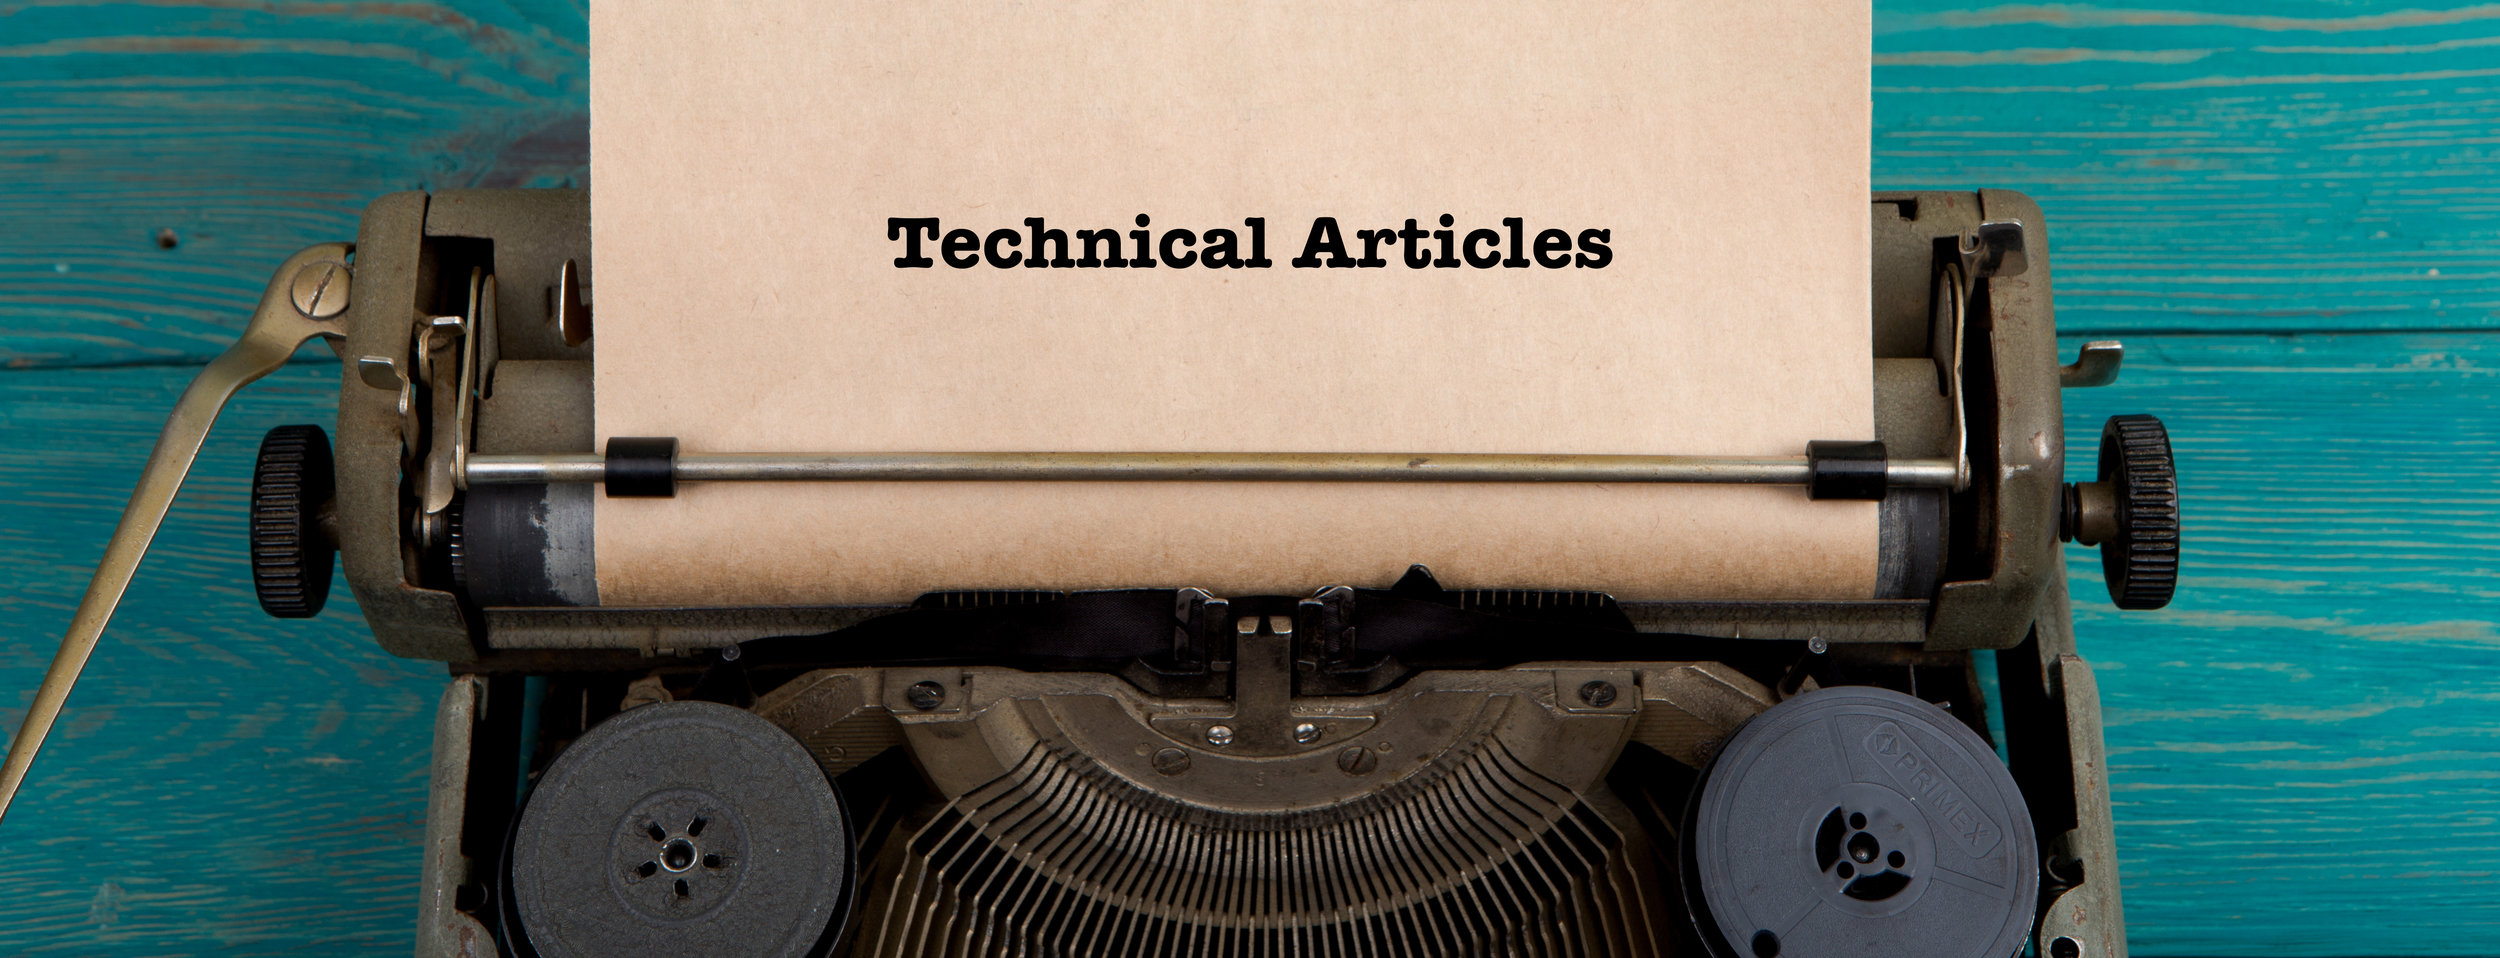 Technical Articles - White Papers -